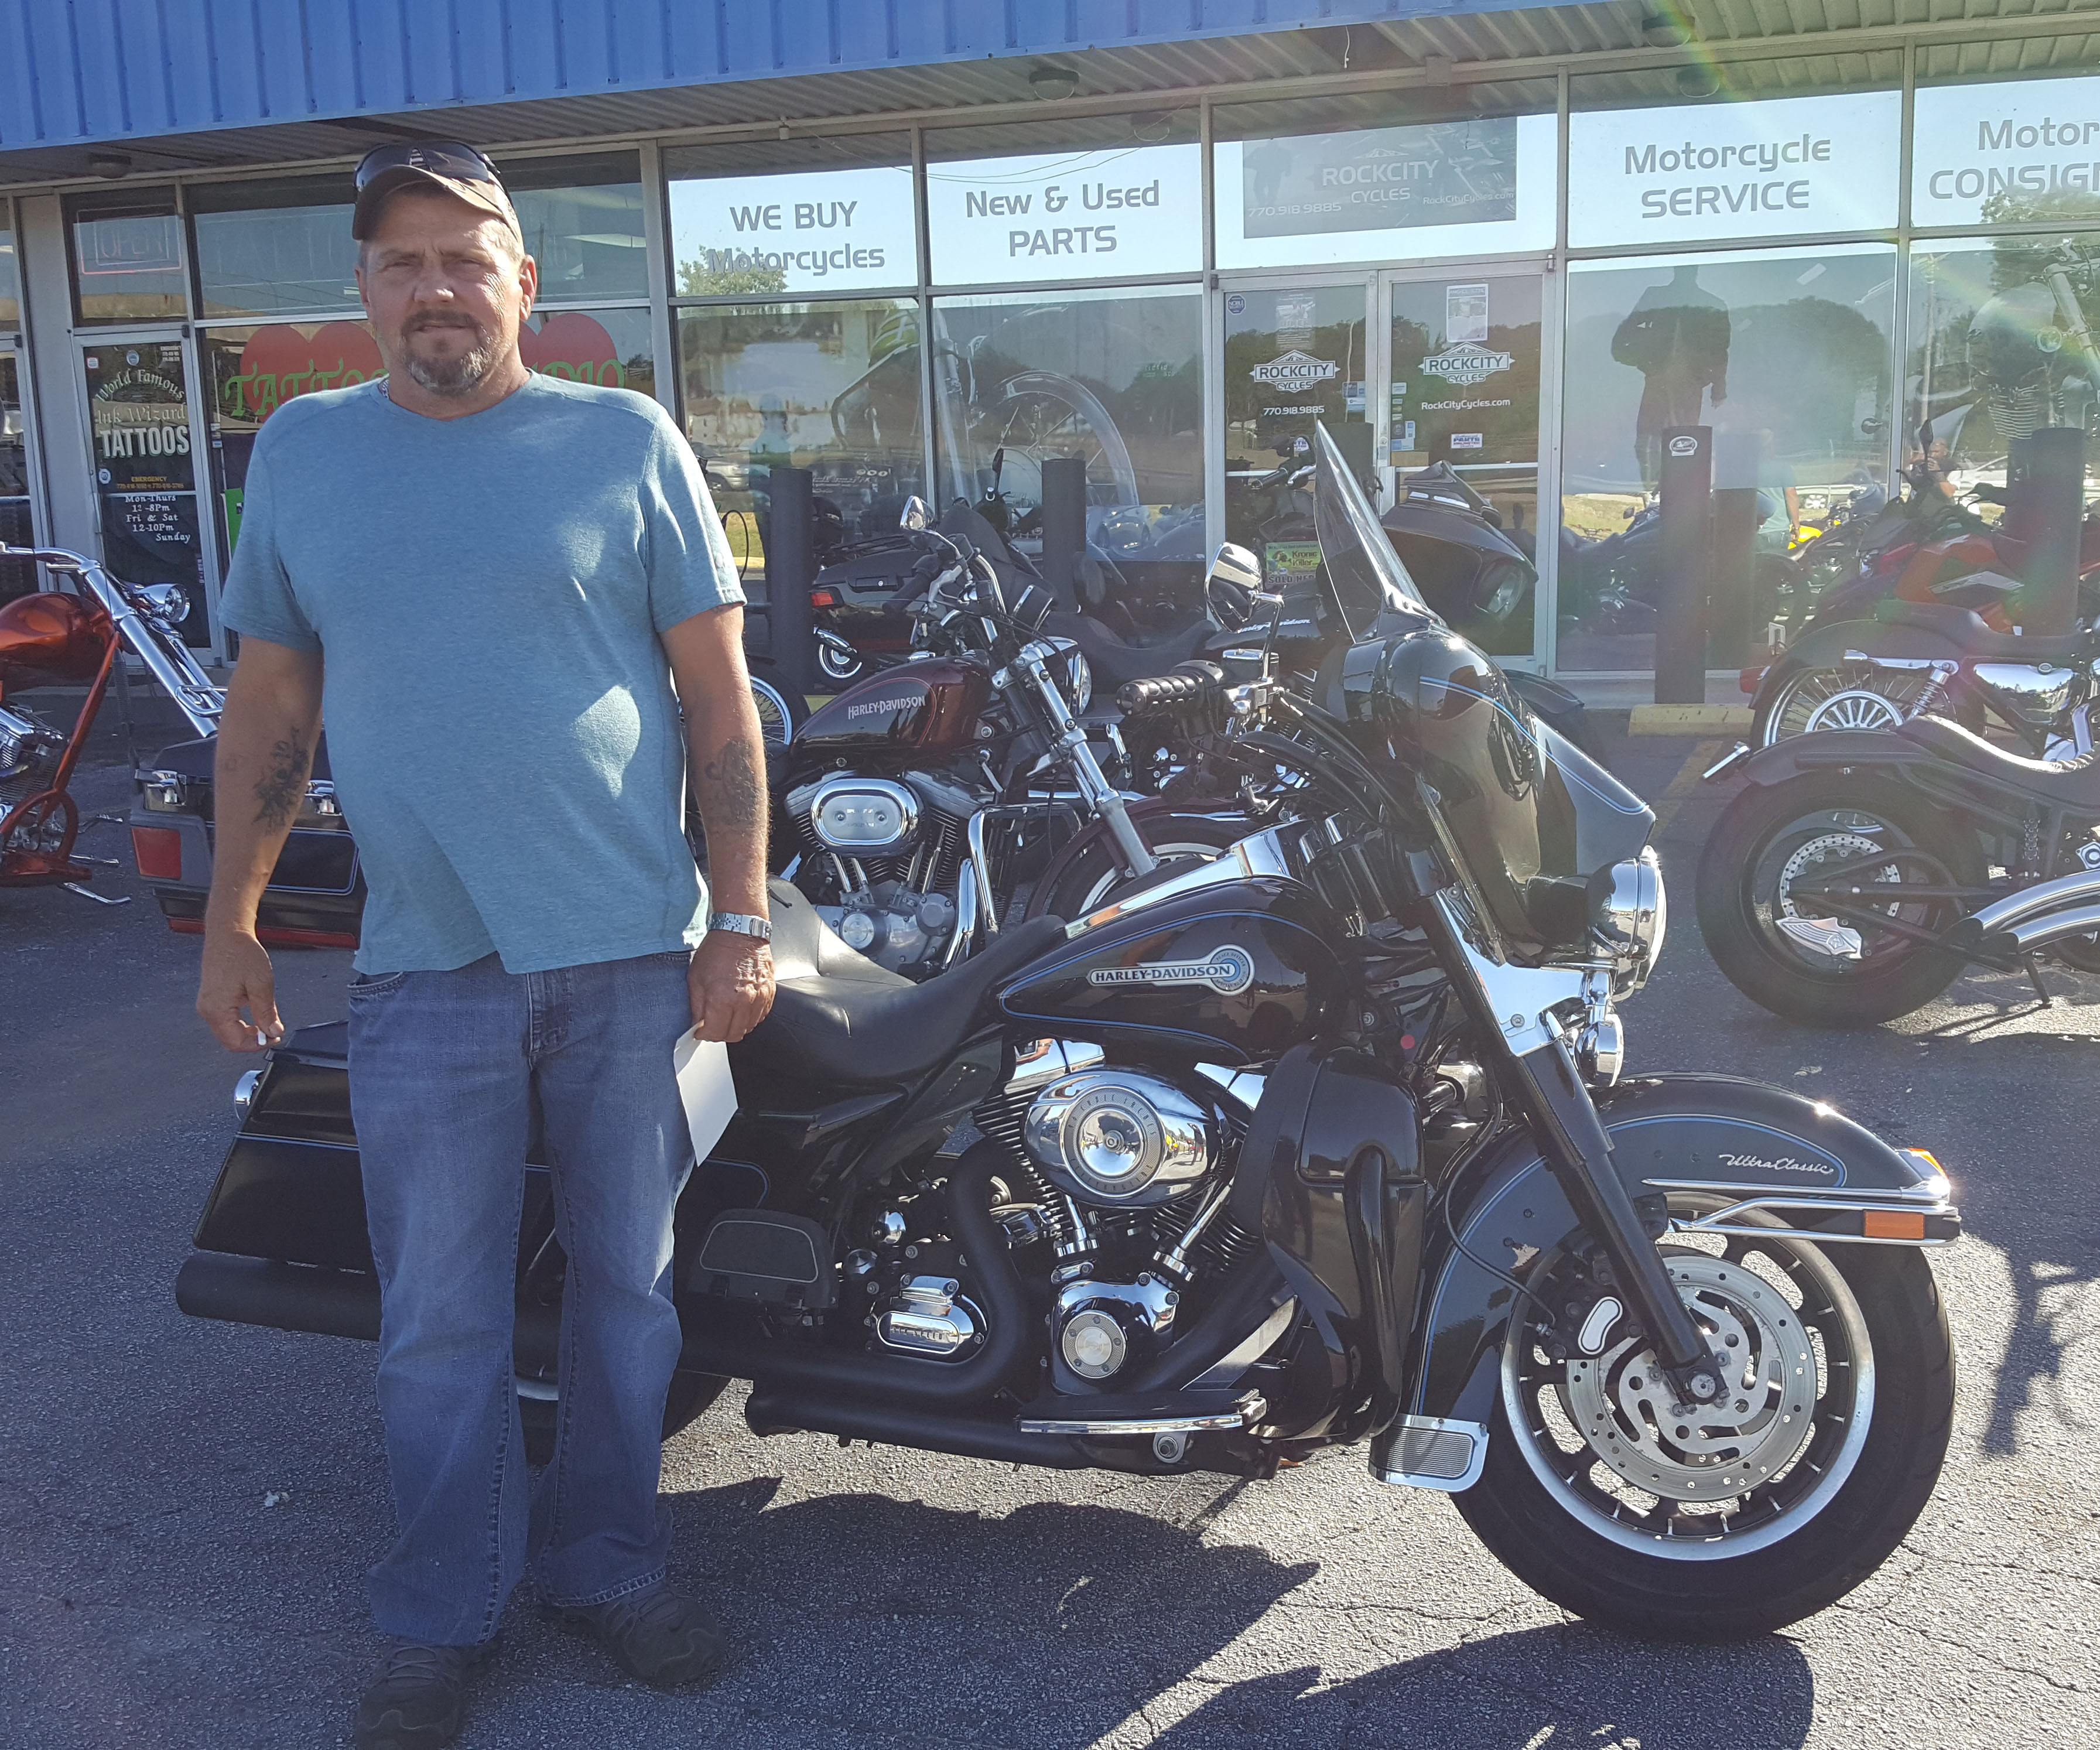 Howard S. with his 2007 Harley-Davidson FLHTCU Ultra Classic Electra Glide